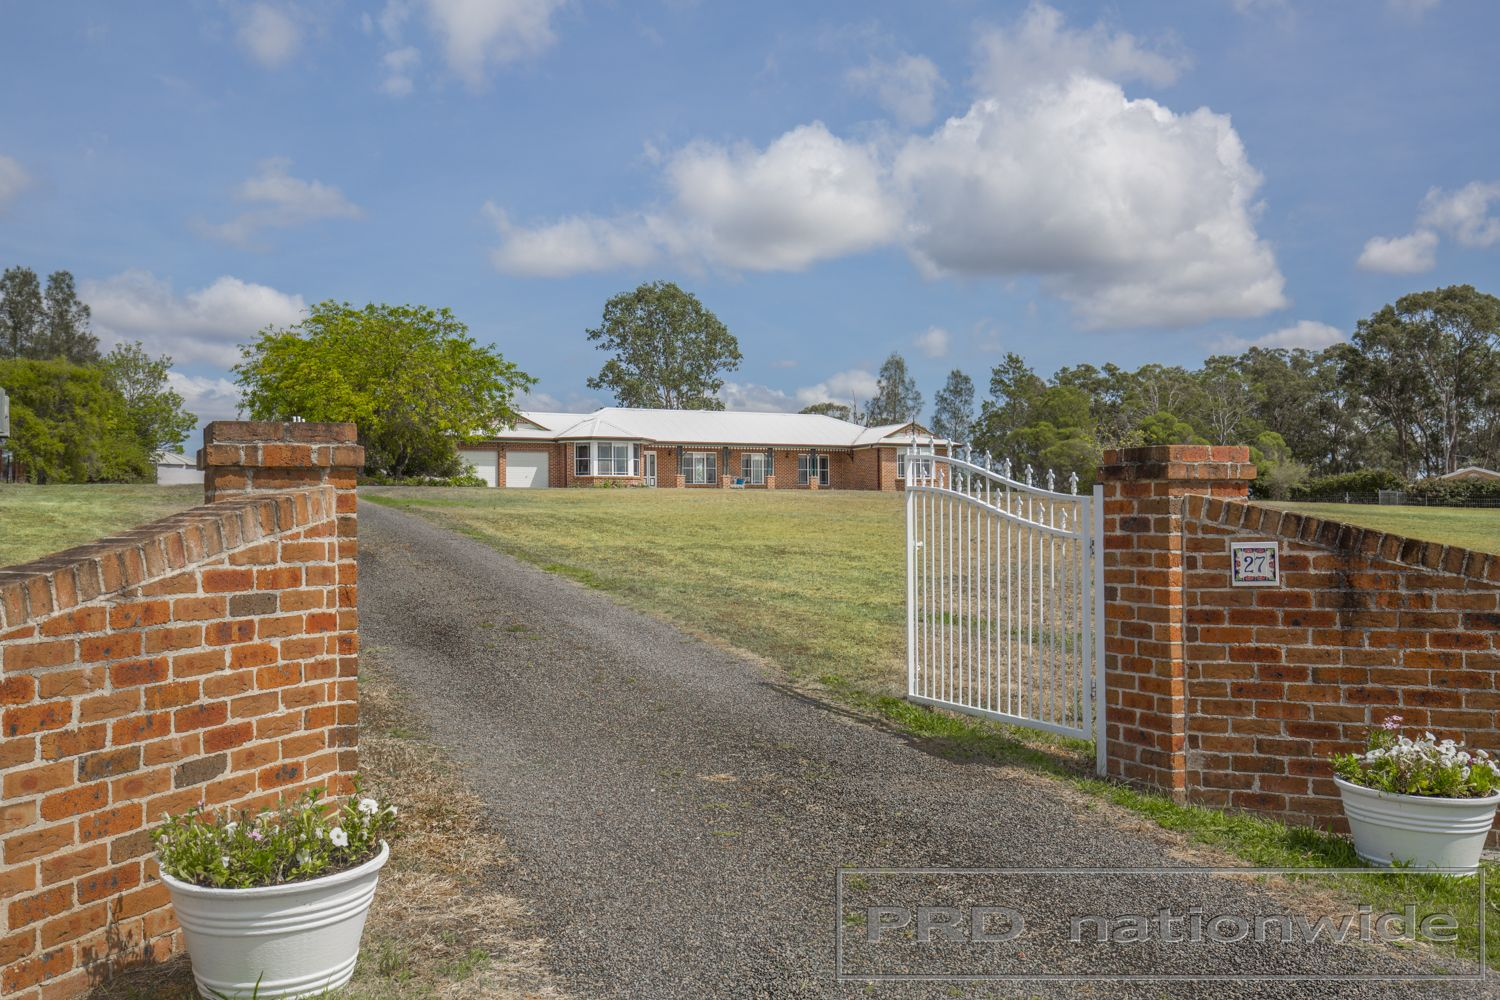 27 View Street, Vacy NSW 2421, Image 0